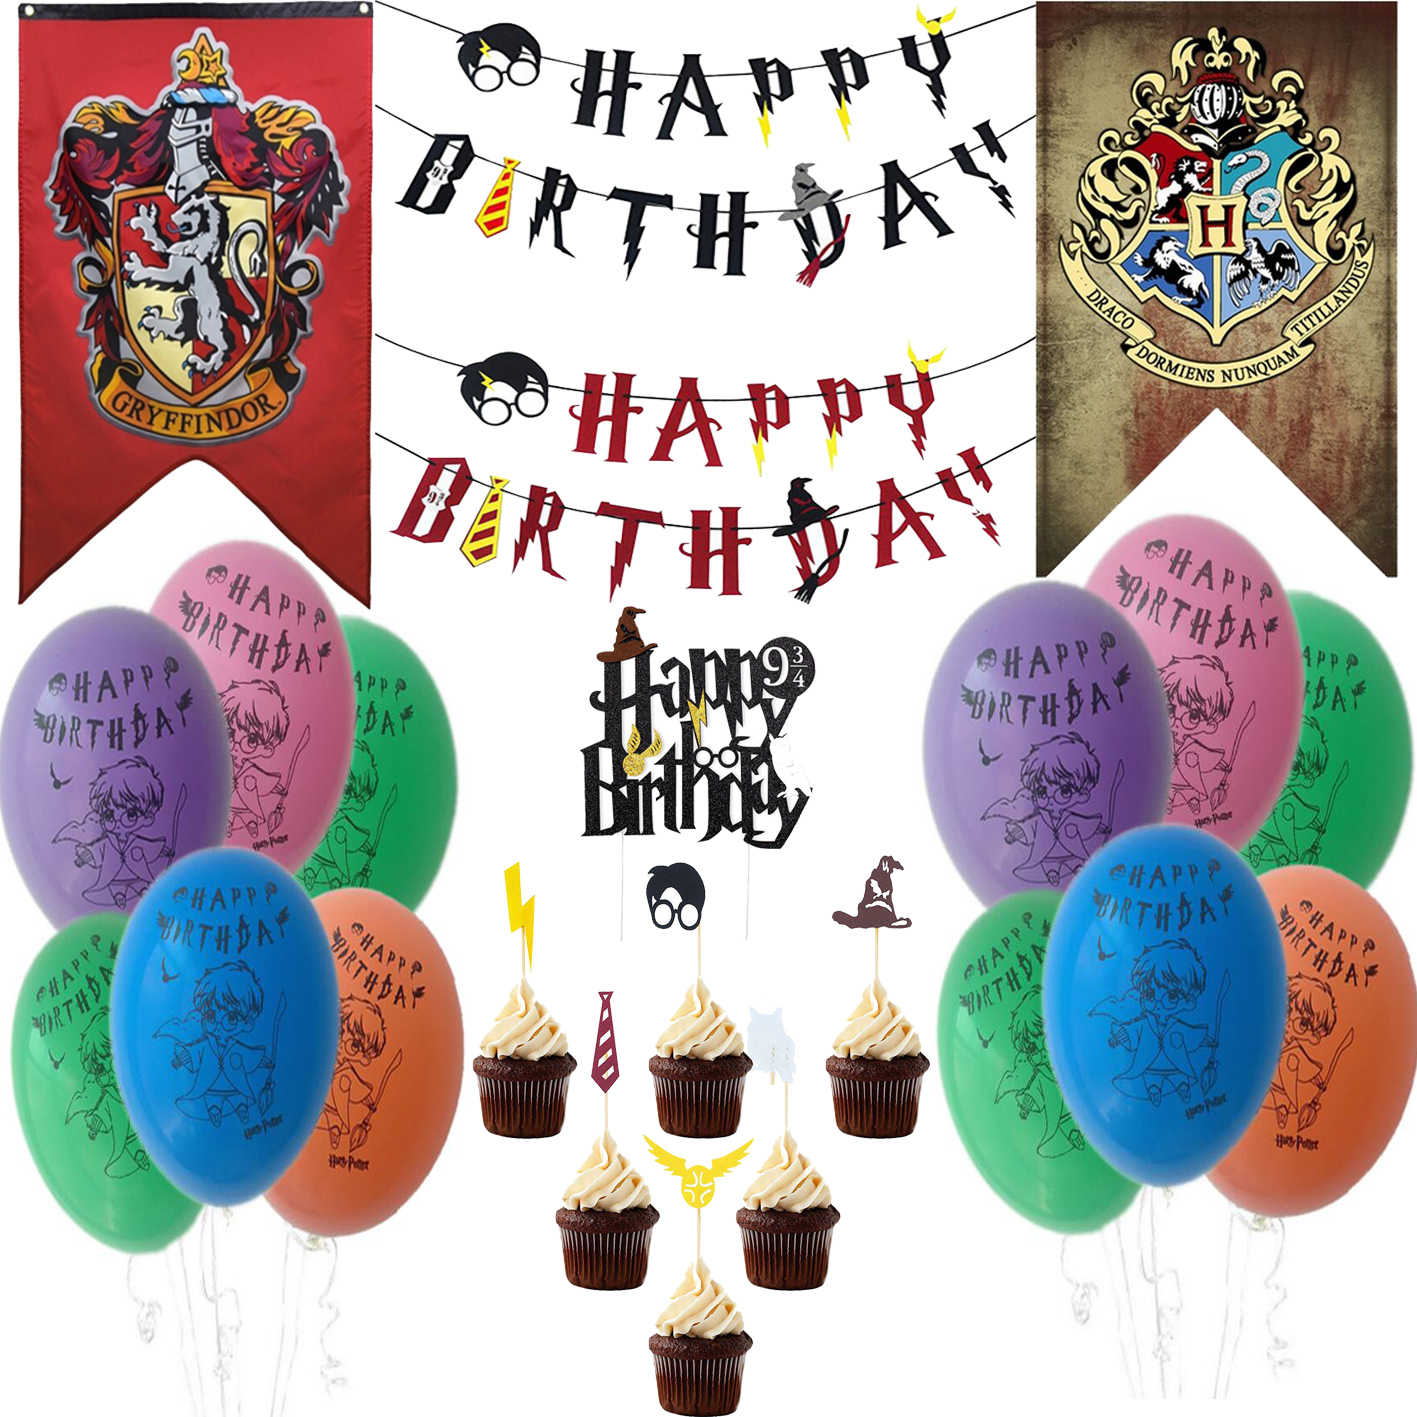 Harry Birthday Party Supplies College Flag Banners Decoration for Boy and Girl Theme Ideas Tableware Harri Wizard Deco